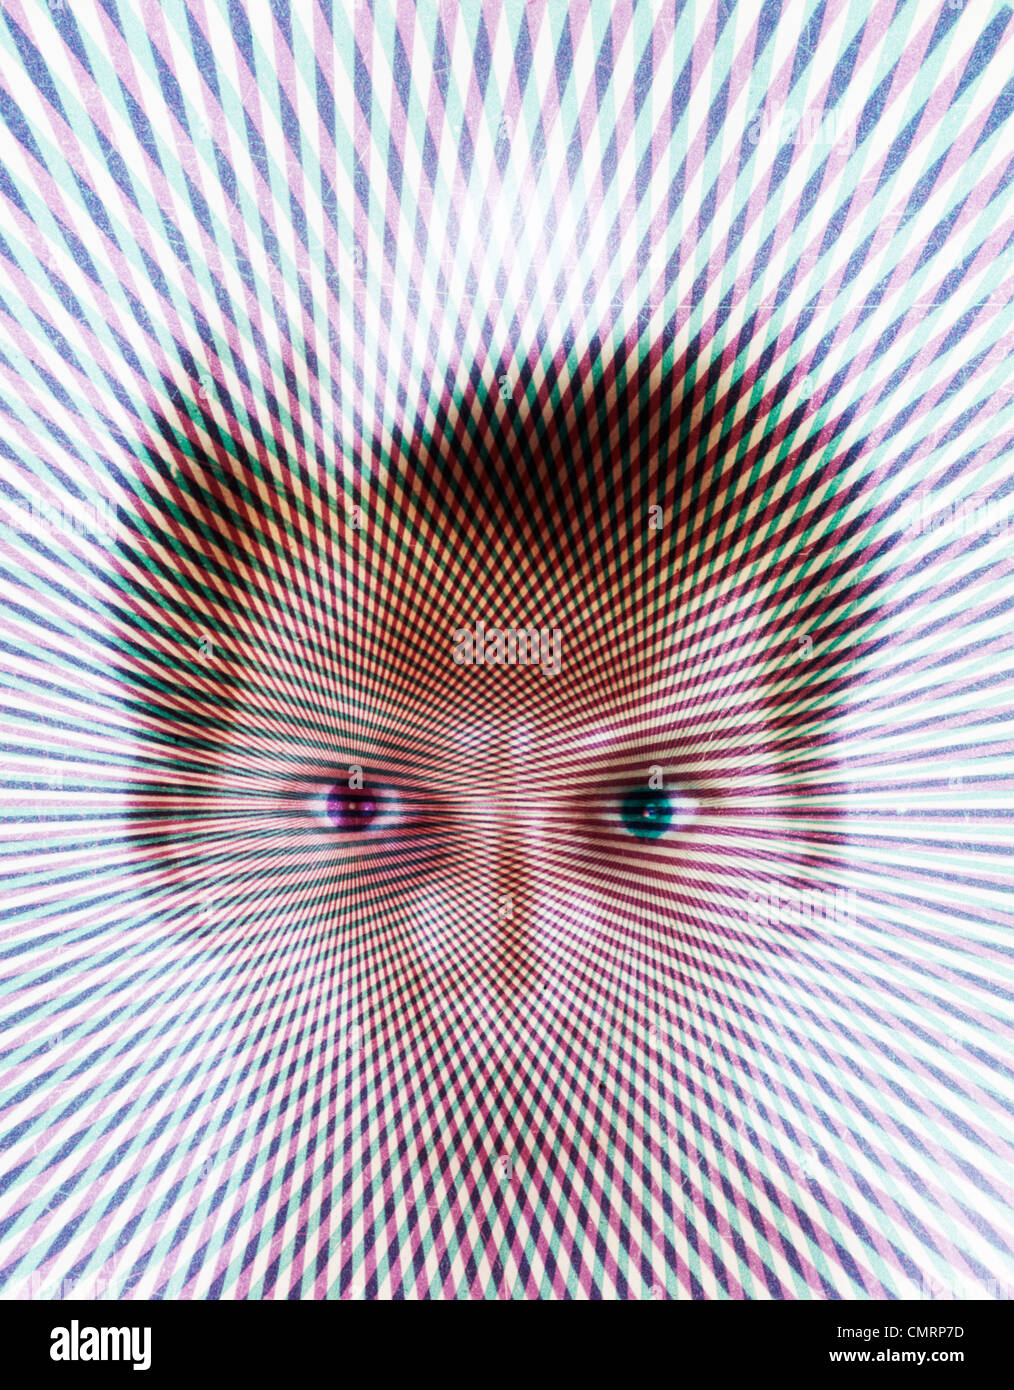 1970s SPECIAL EFFECT PSYCHEDELIC PATTERN OVER PORTRAIT BLONDE MAN FAN OUT FROM EYES STARE WEIRD 3 DIMENSIONAL HOLOGRAM - Stock Image